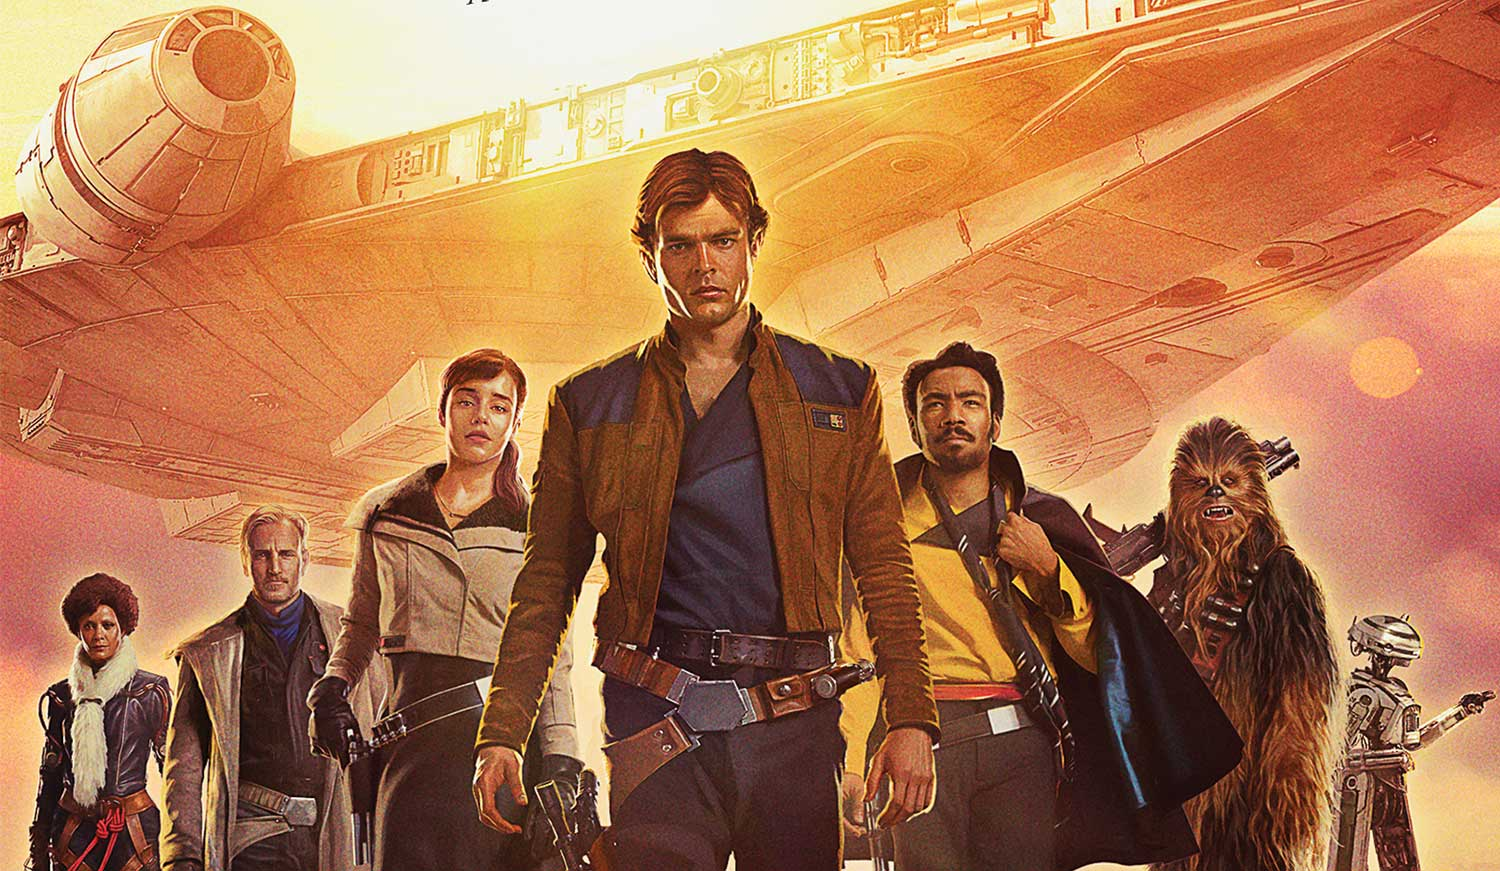 'Solo' joins Star Wars movie library on Disney+ July 10